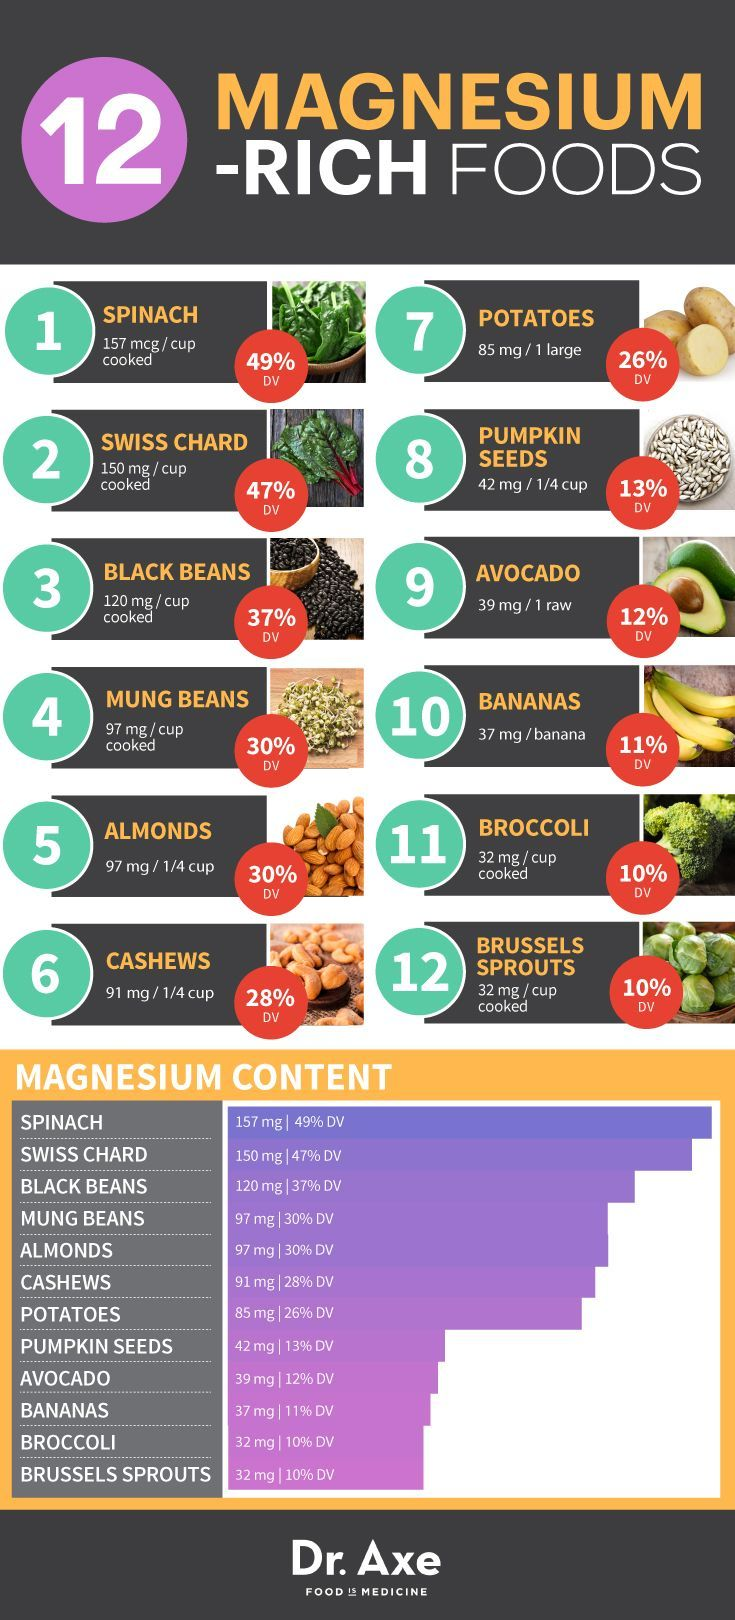 Here are Foods High in Magnesium. Does your eating plan include them?